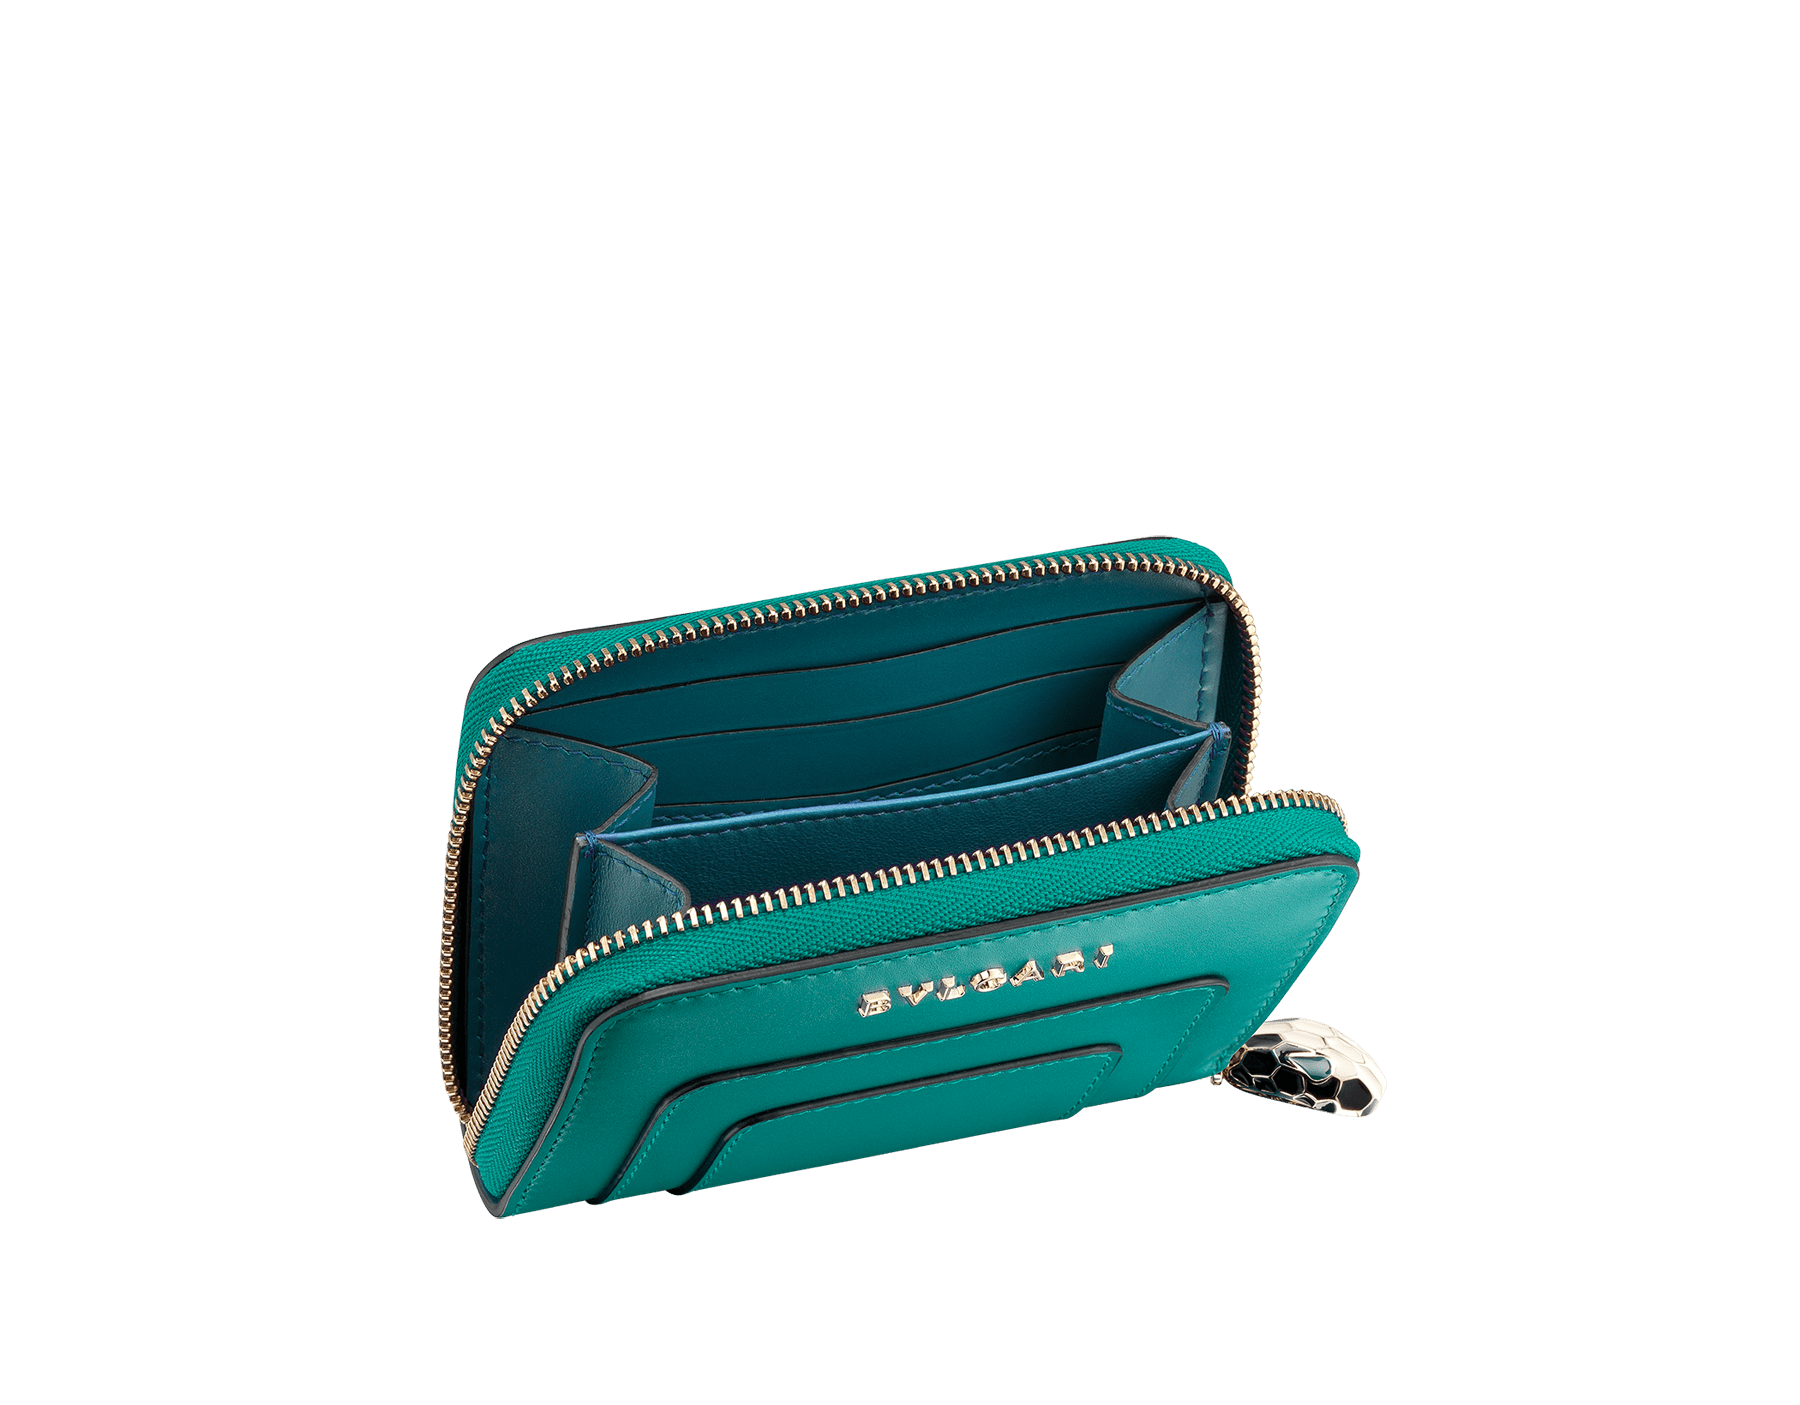 Serpenti Forever mini zipped wallet in tropical tourquoise and deep jade calf leather. Iconic snakehead zip puller in black and white enamel, with green enamel eyes. 288010 image 2